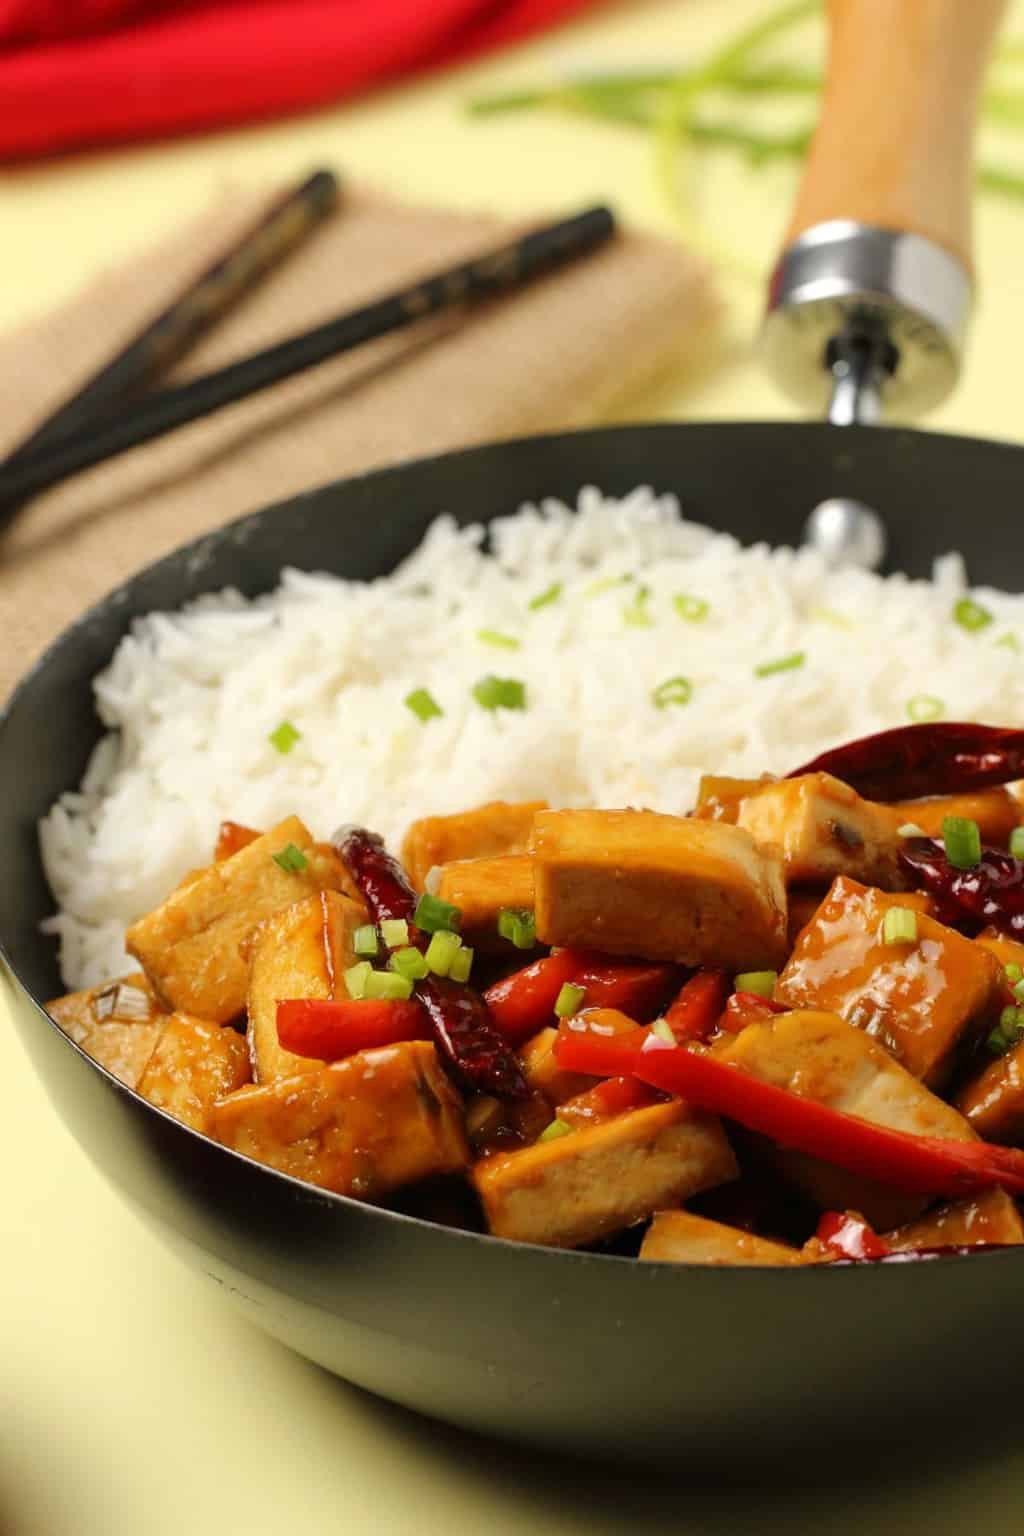 Kung pao tofu served in a wok with basmati rice and topped with chopped spring onions.